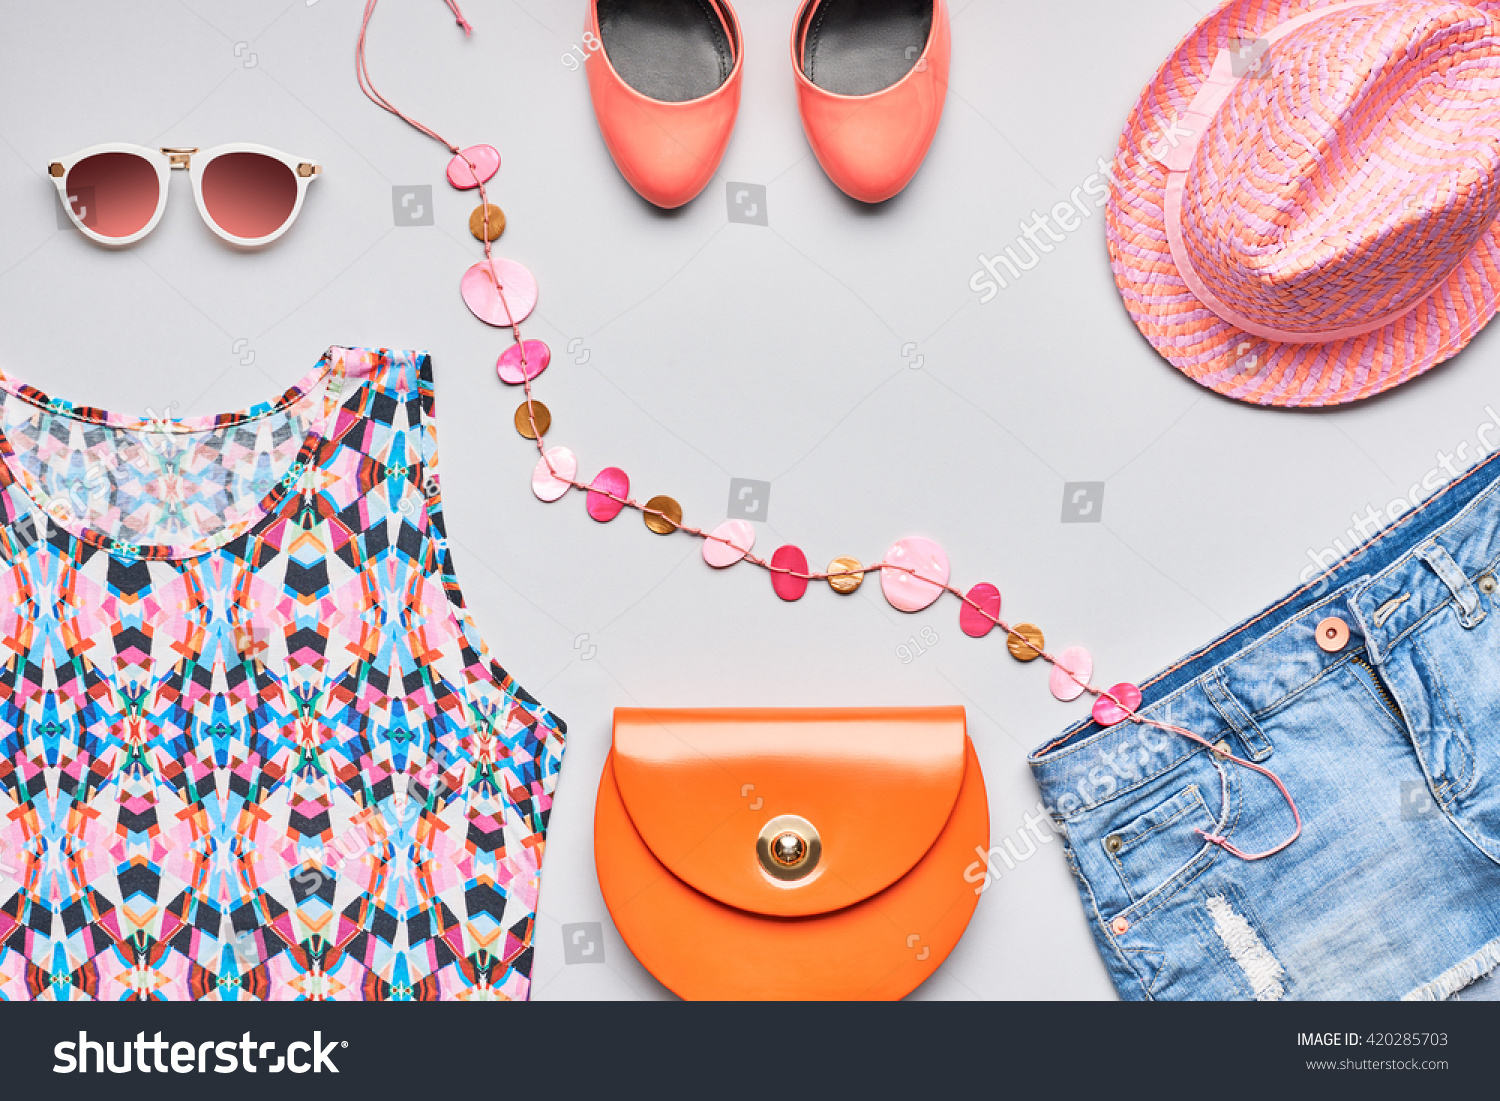 Accessories Clothes